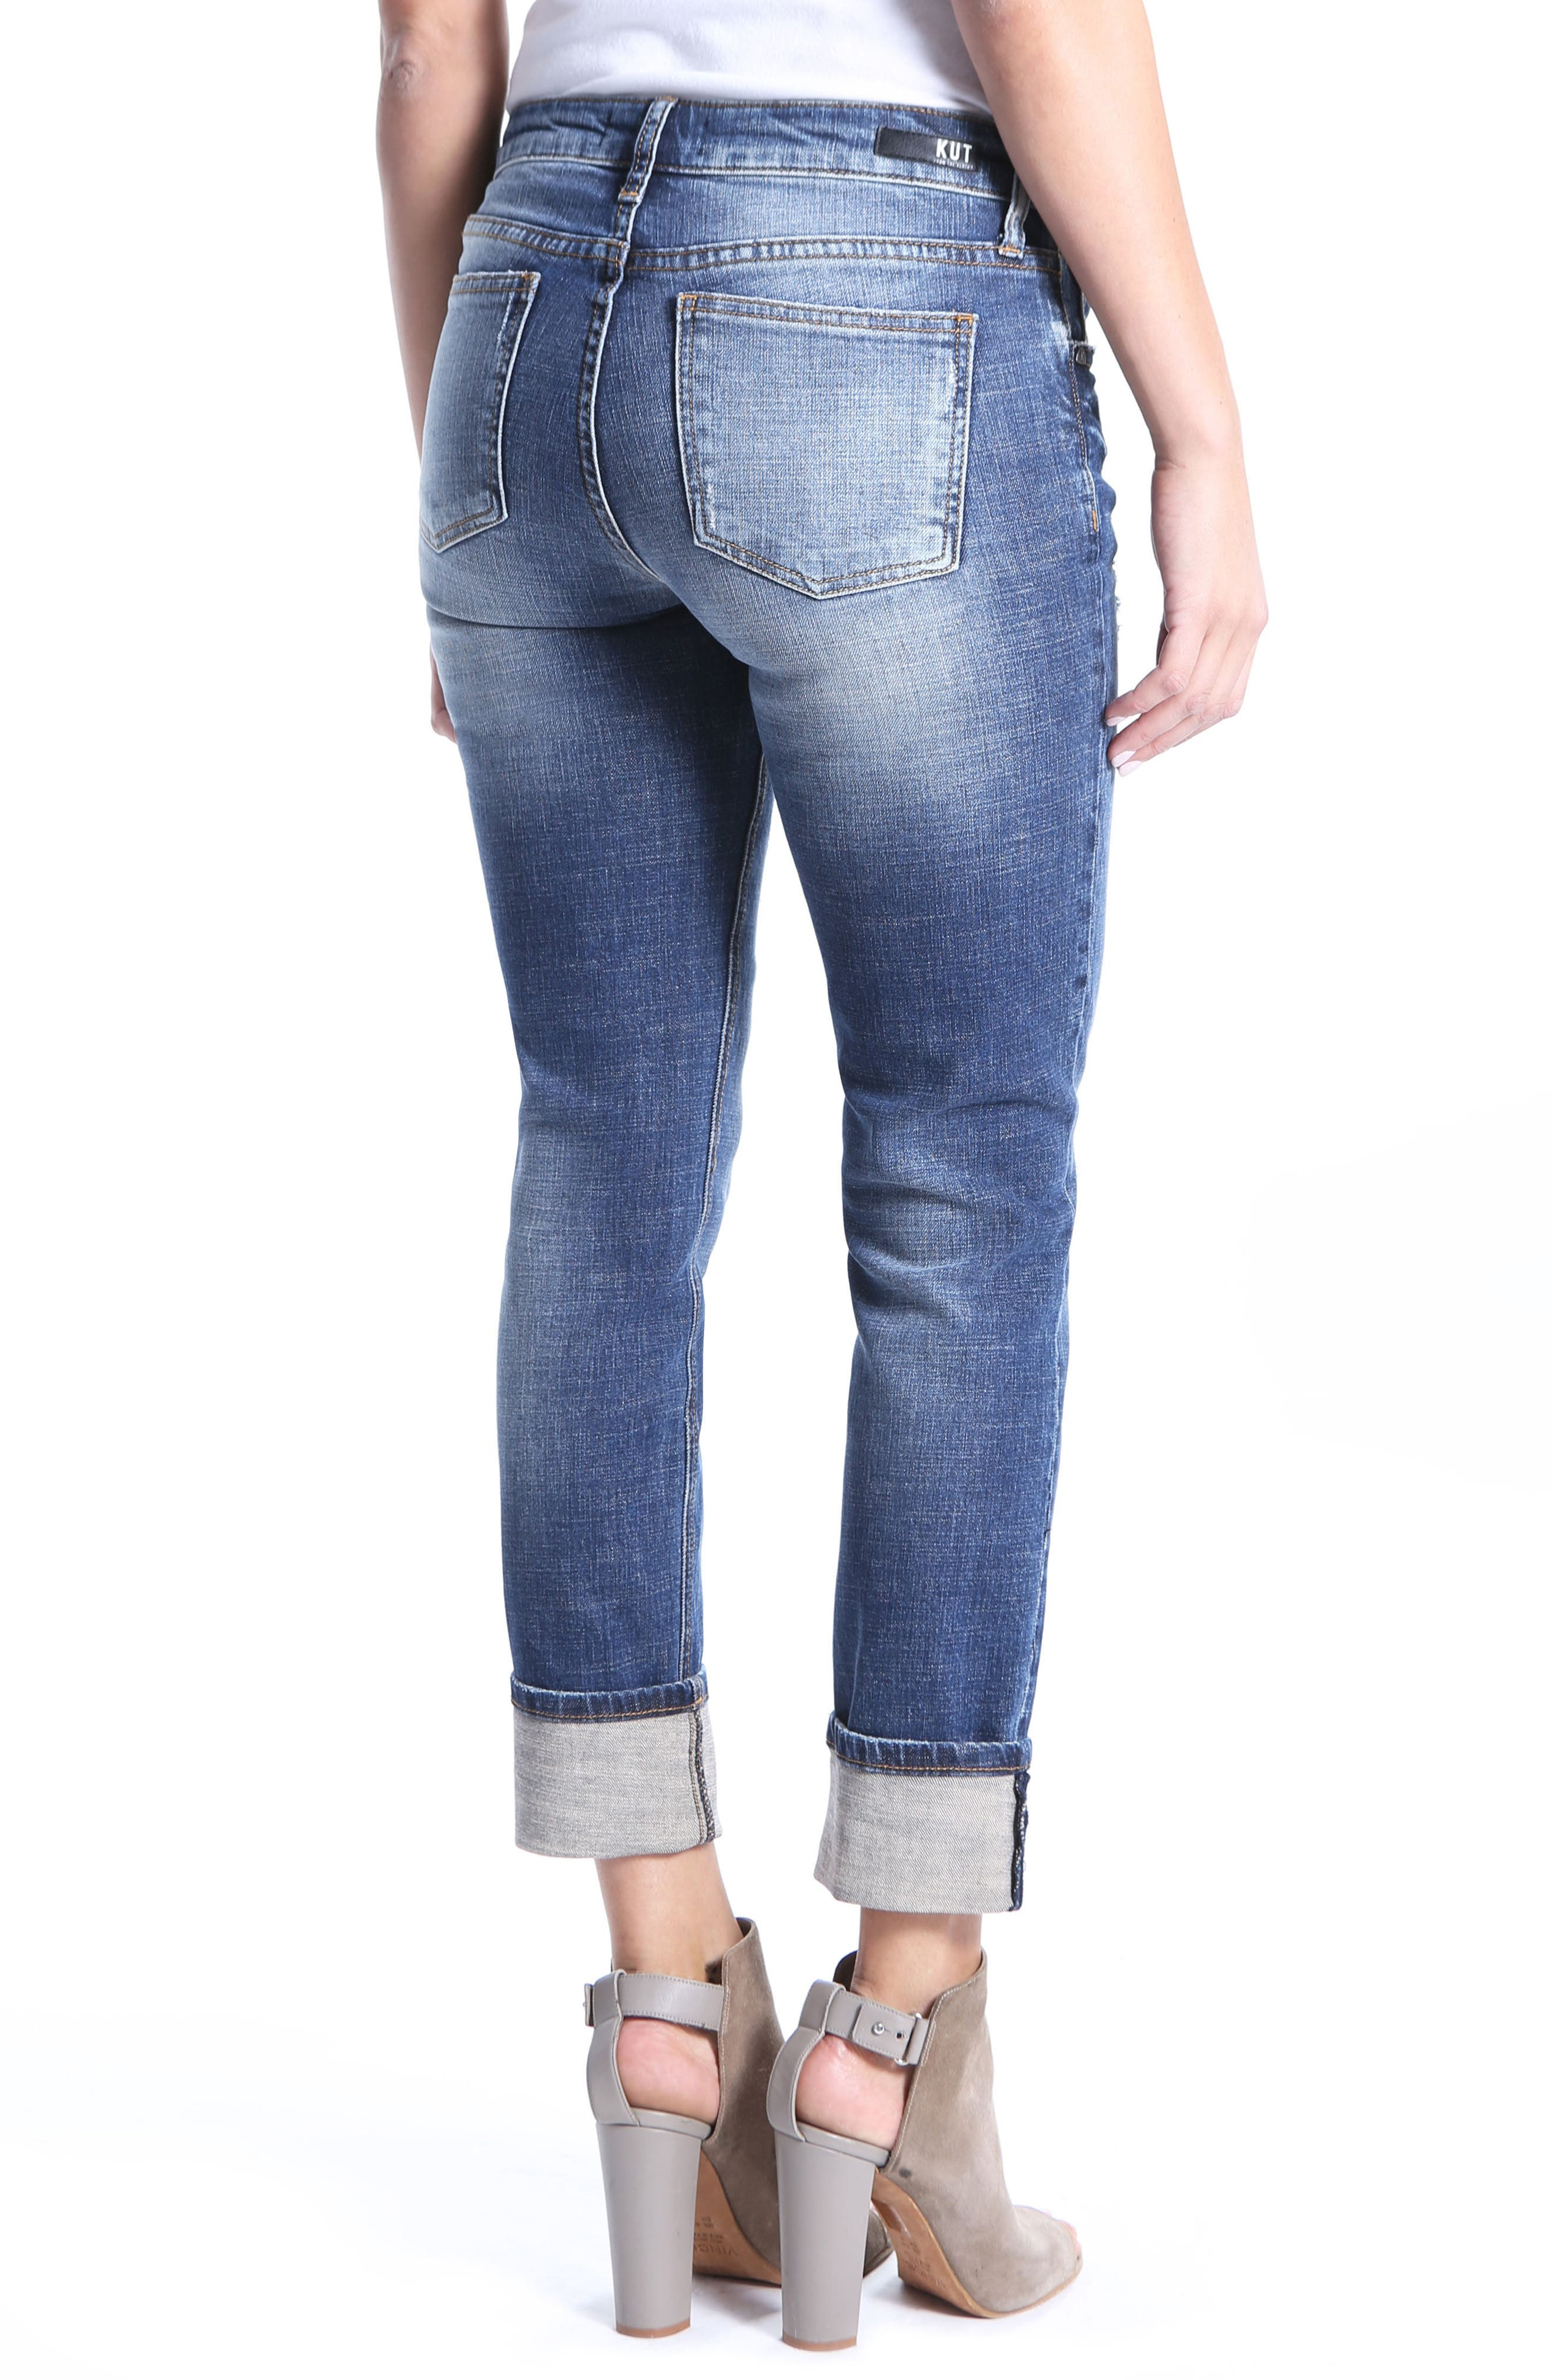 Catherine Ripped Boyfriend Jeans,                             Alternate thumbnail 2, color,                             400